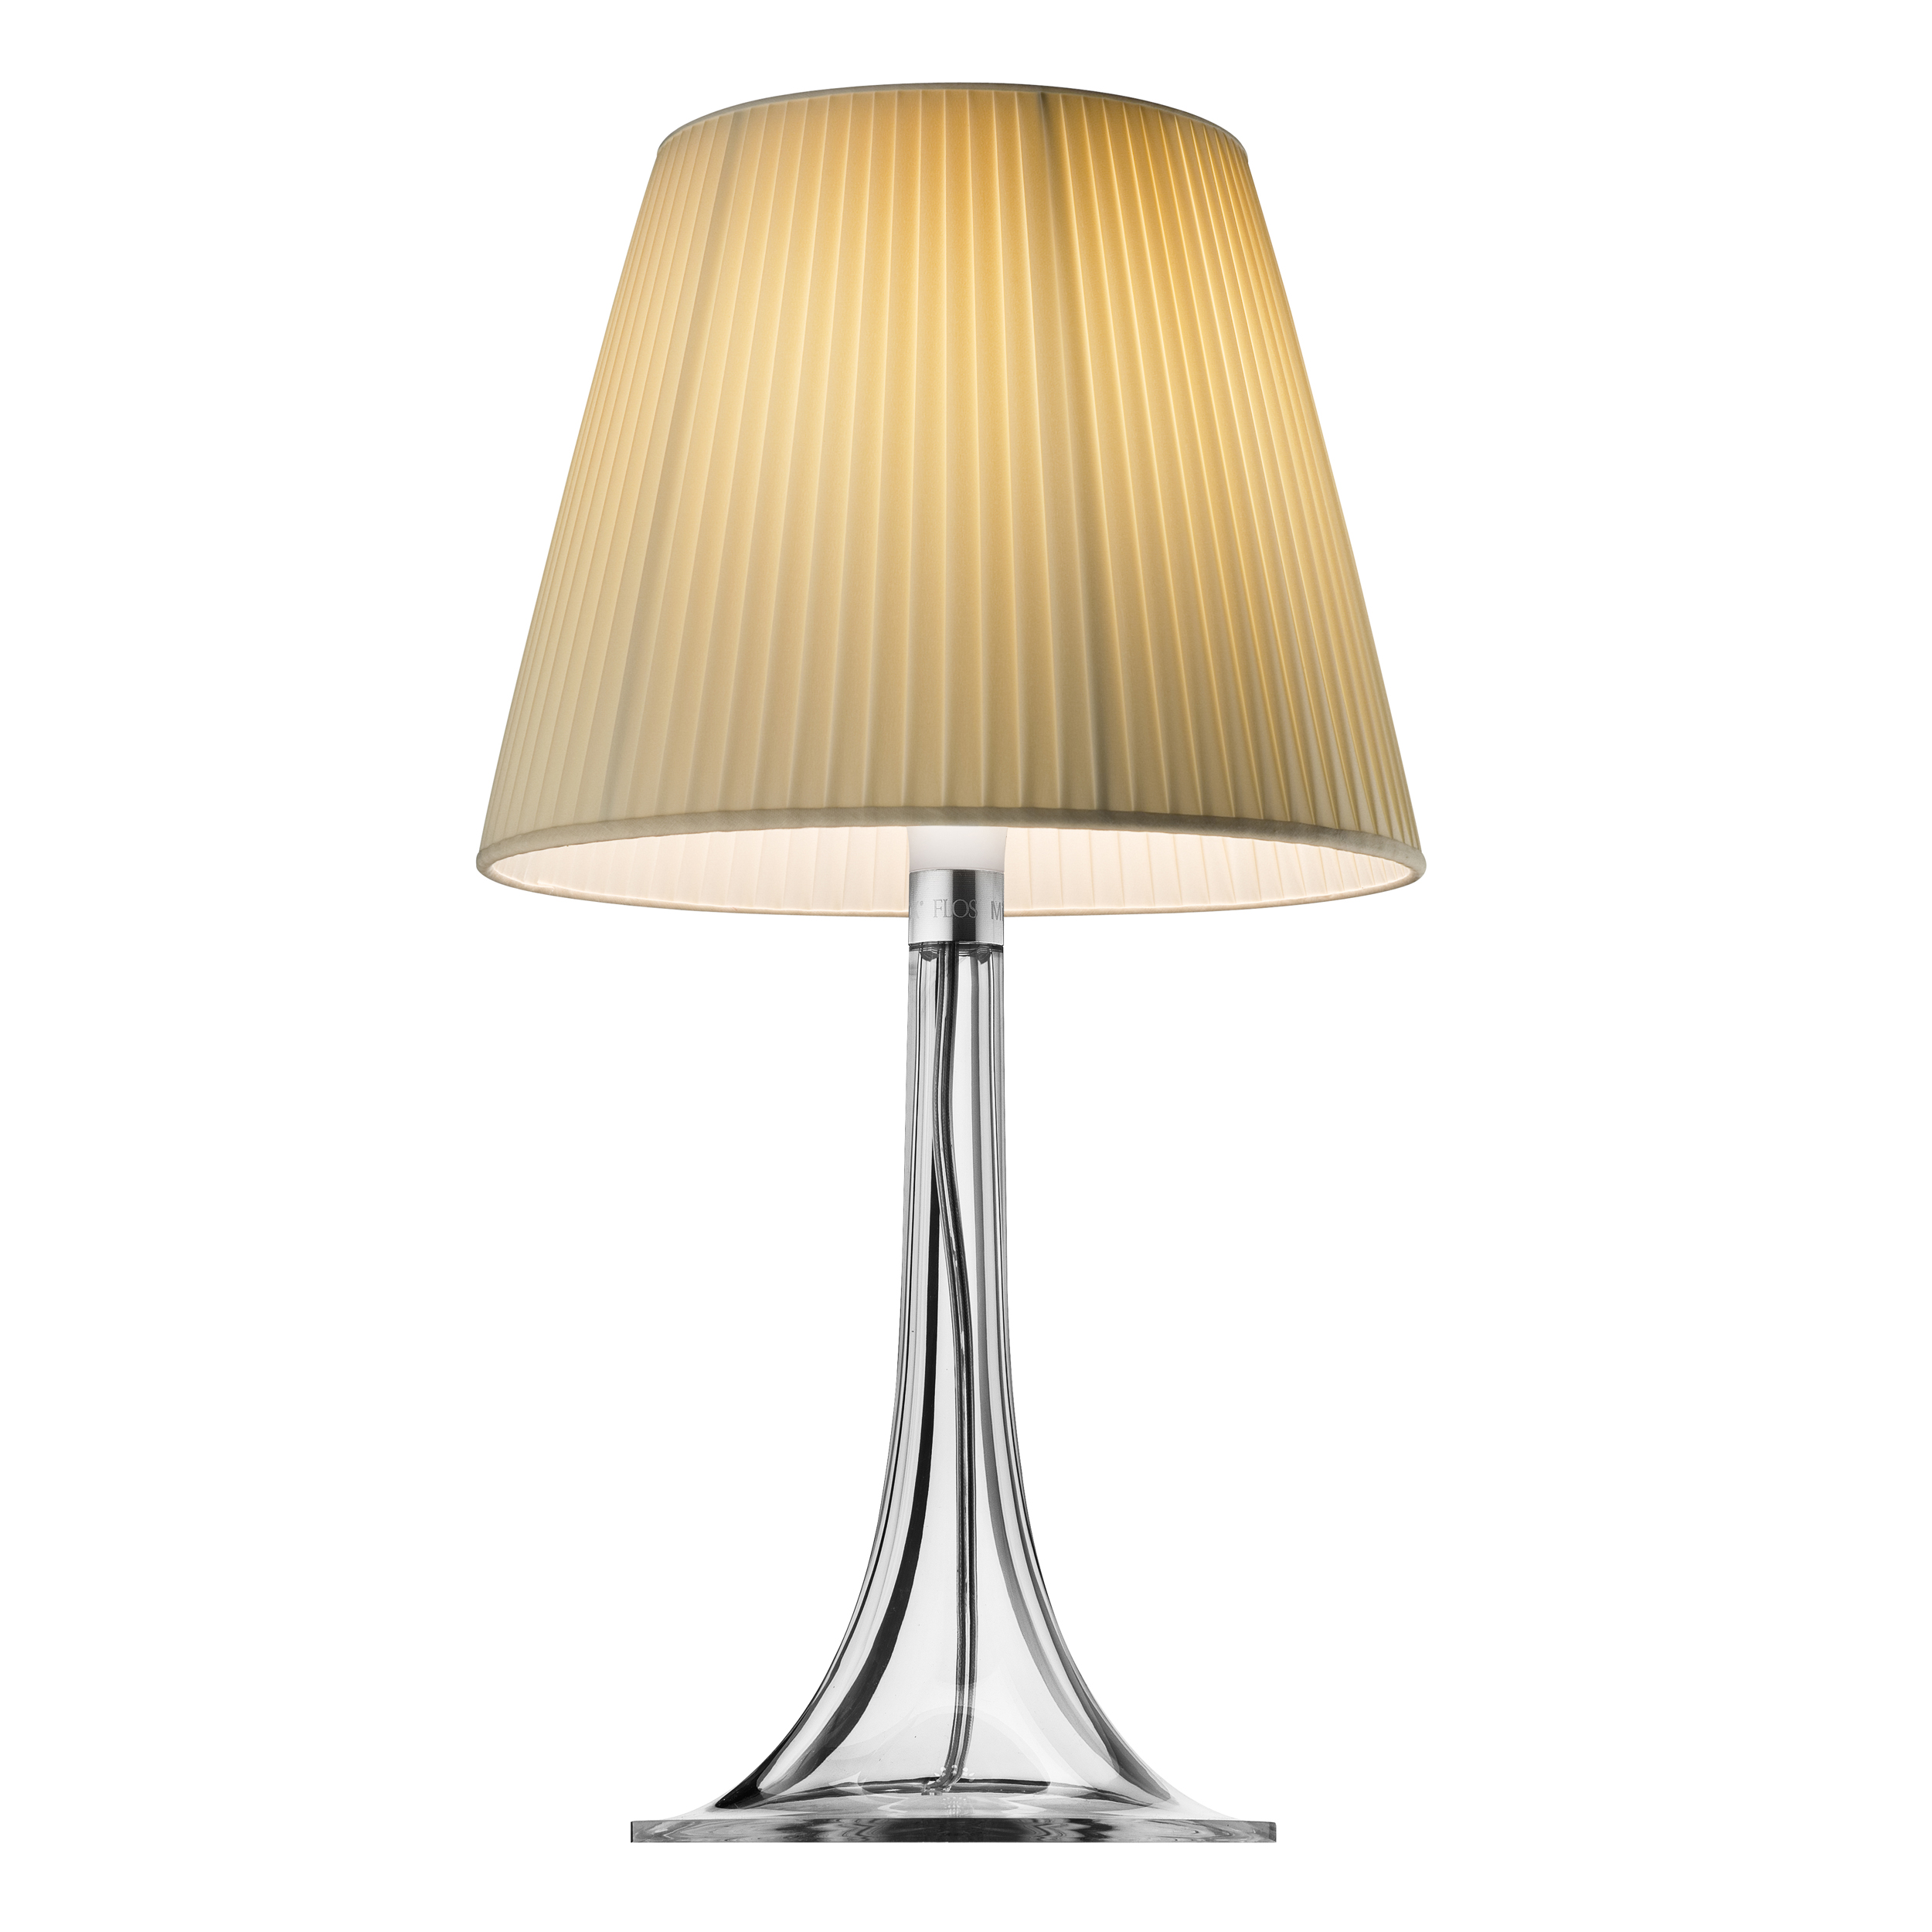 miss k soft table lamp